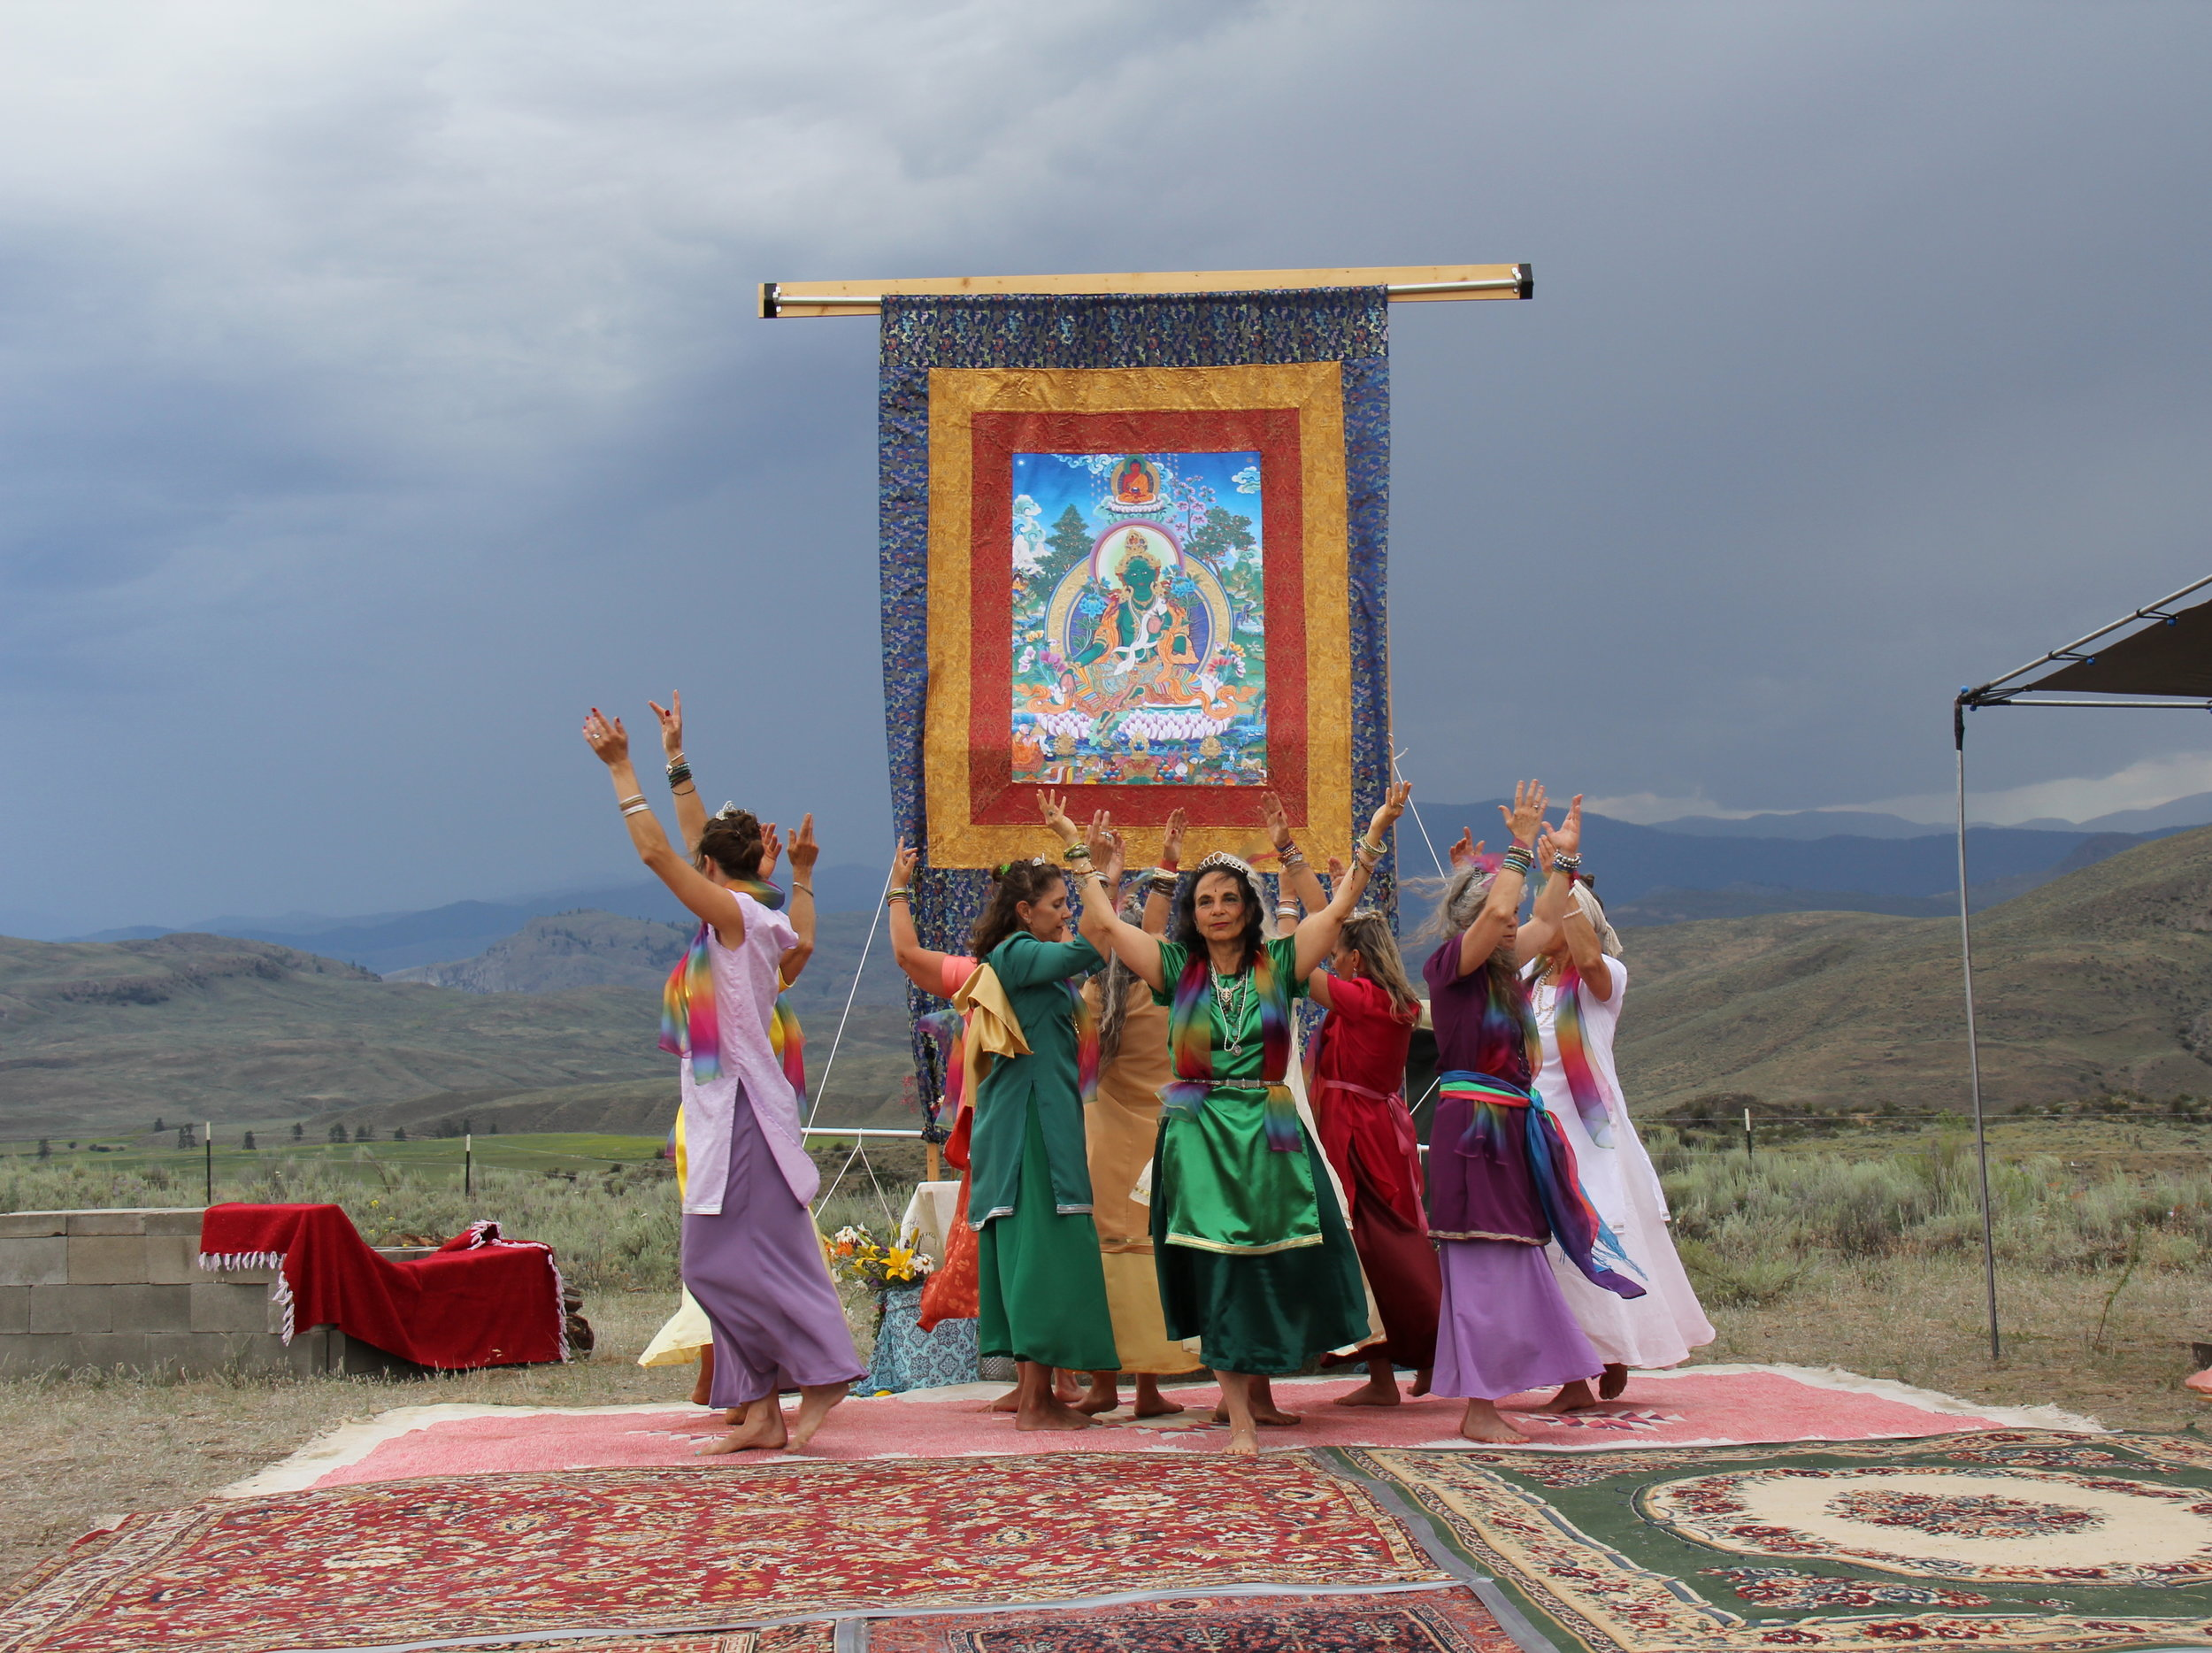 Photo from the Annual Tara Festival in Tonasket, WA